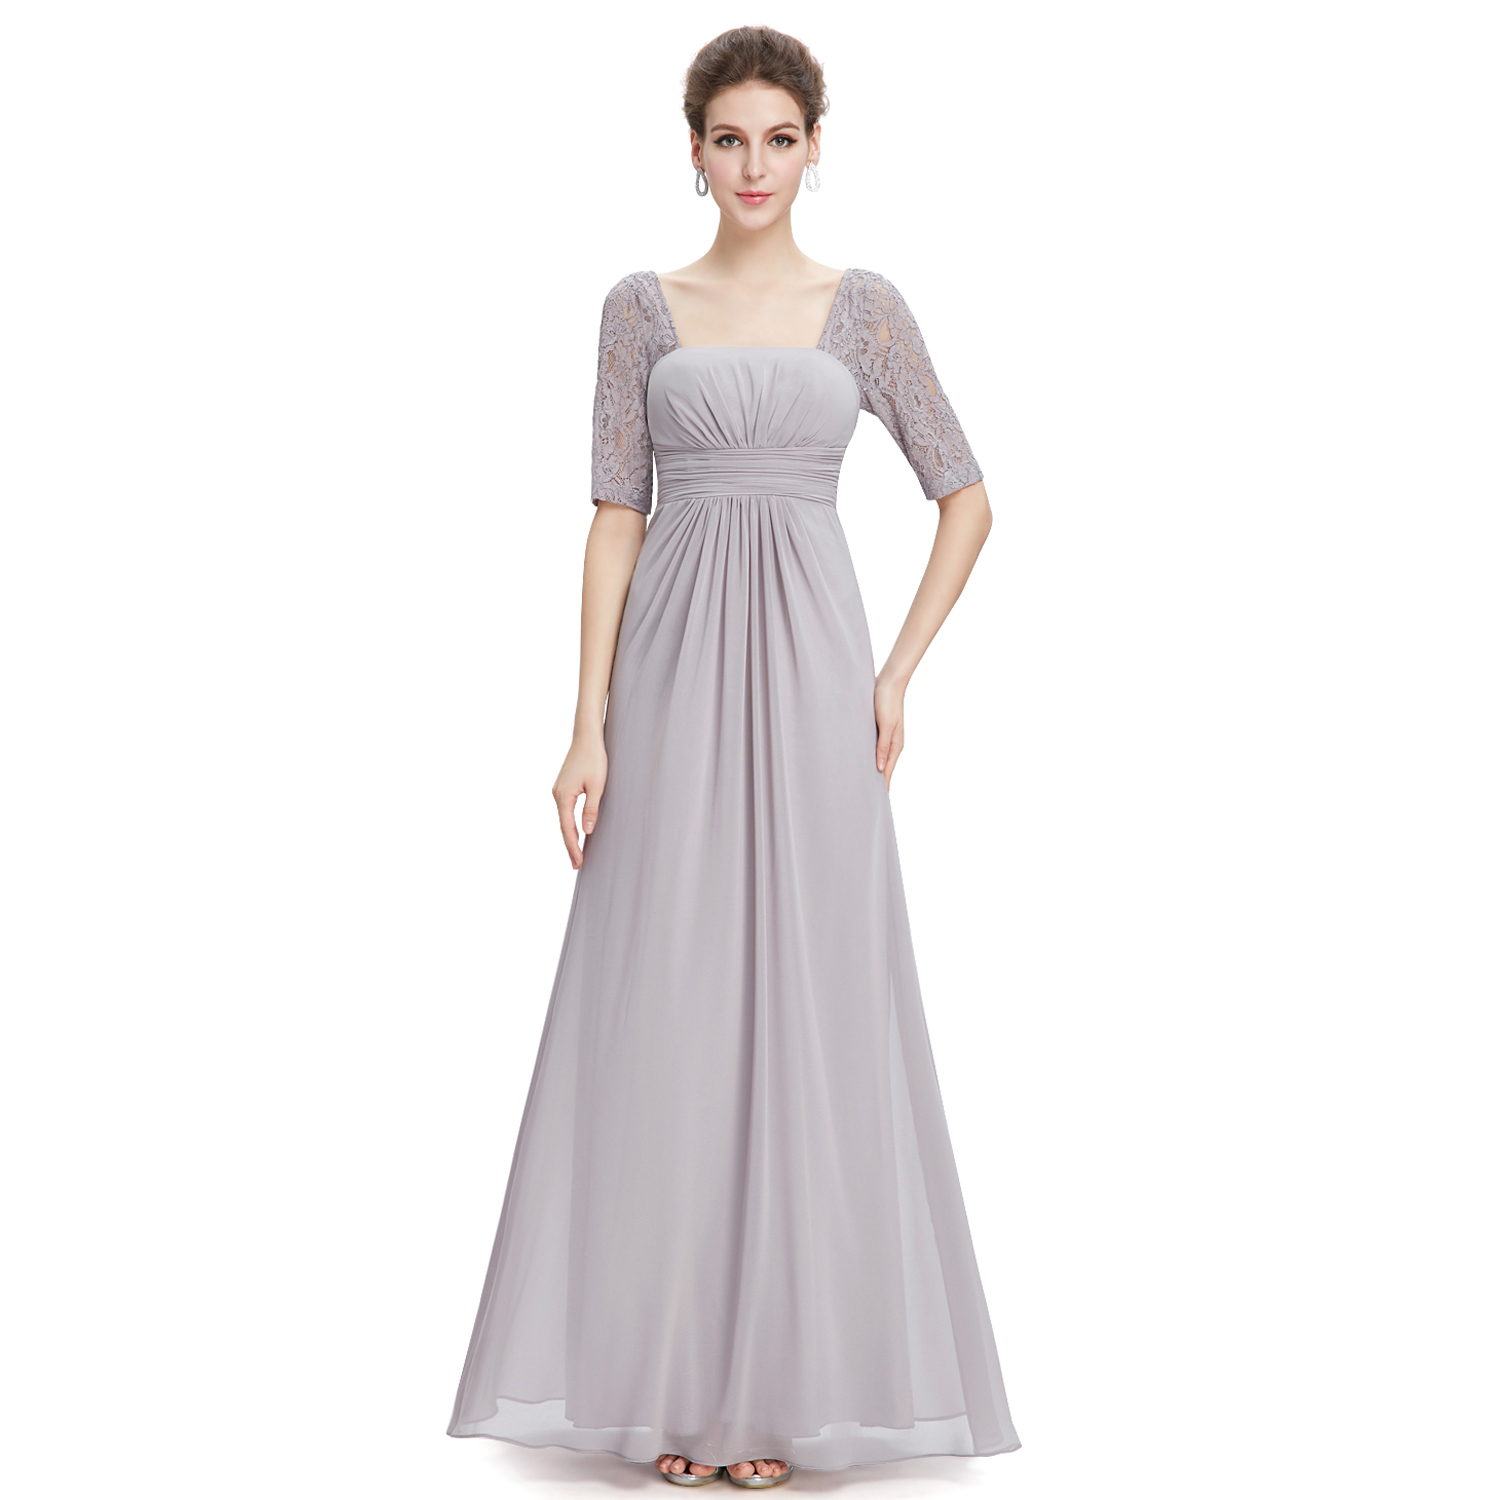 Ever pretty lace long wedding gown short sleeve party bridesmaid picture 12 of 16 ombrellifo Choice Image